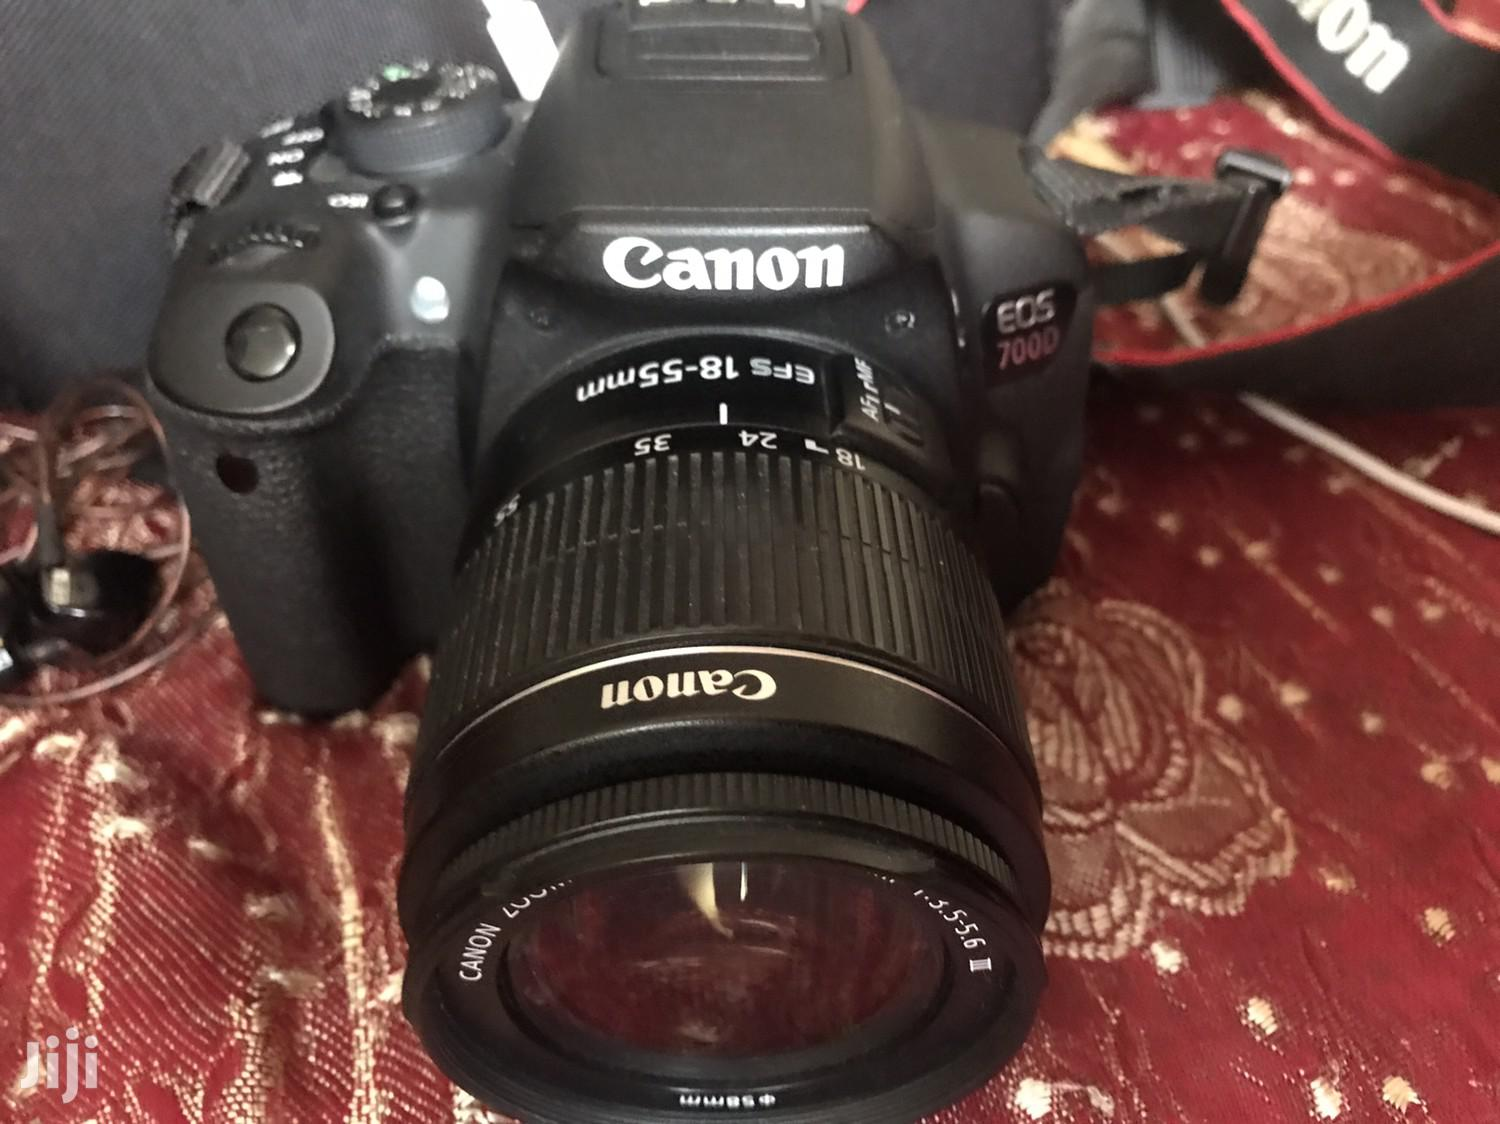 Archive: Canon Eos 700d (T5i) With Kit Lens and Battery